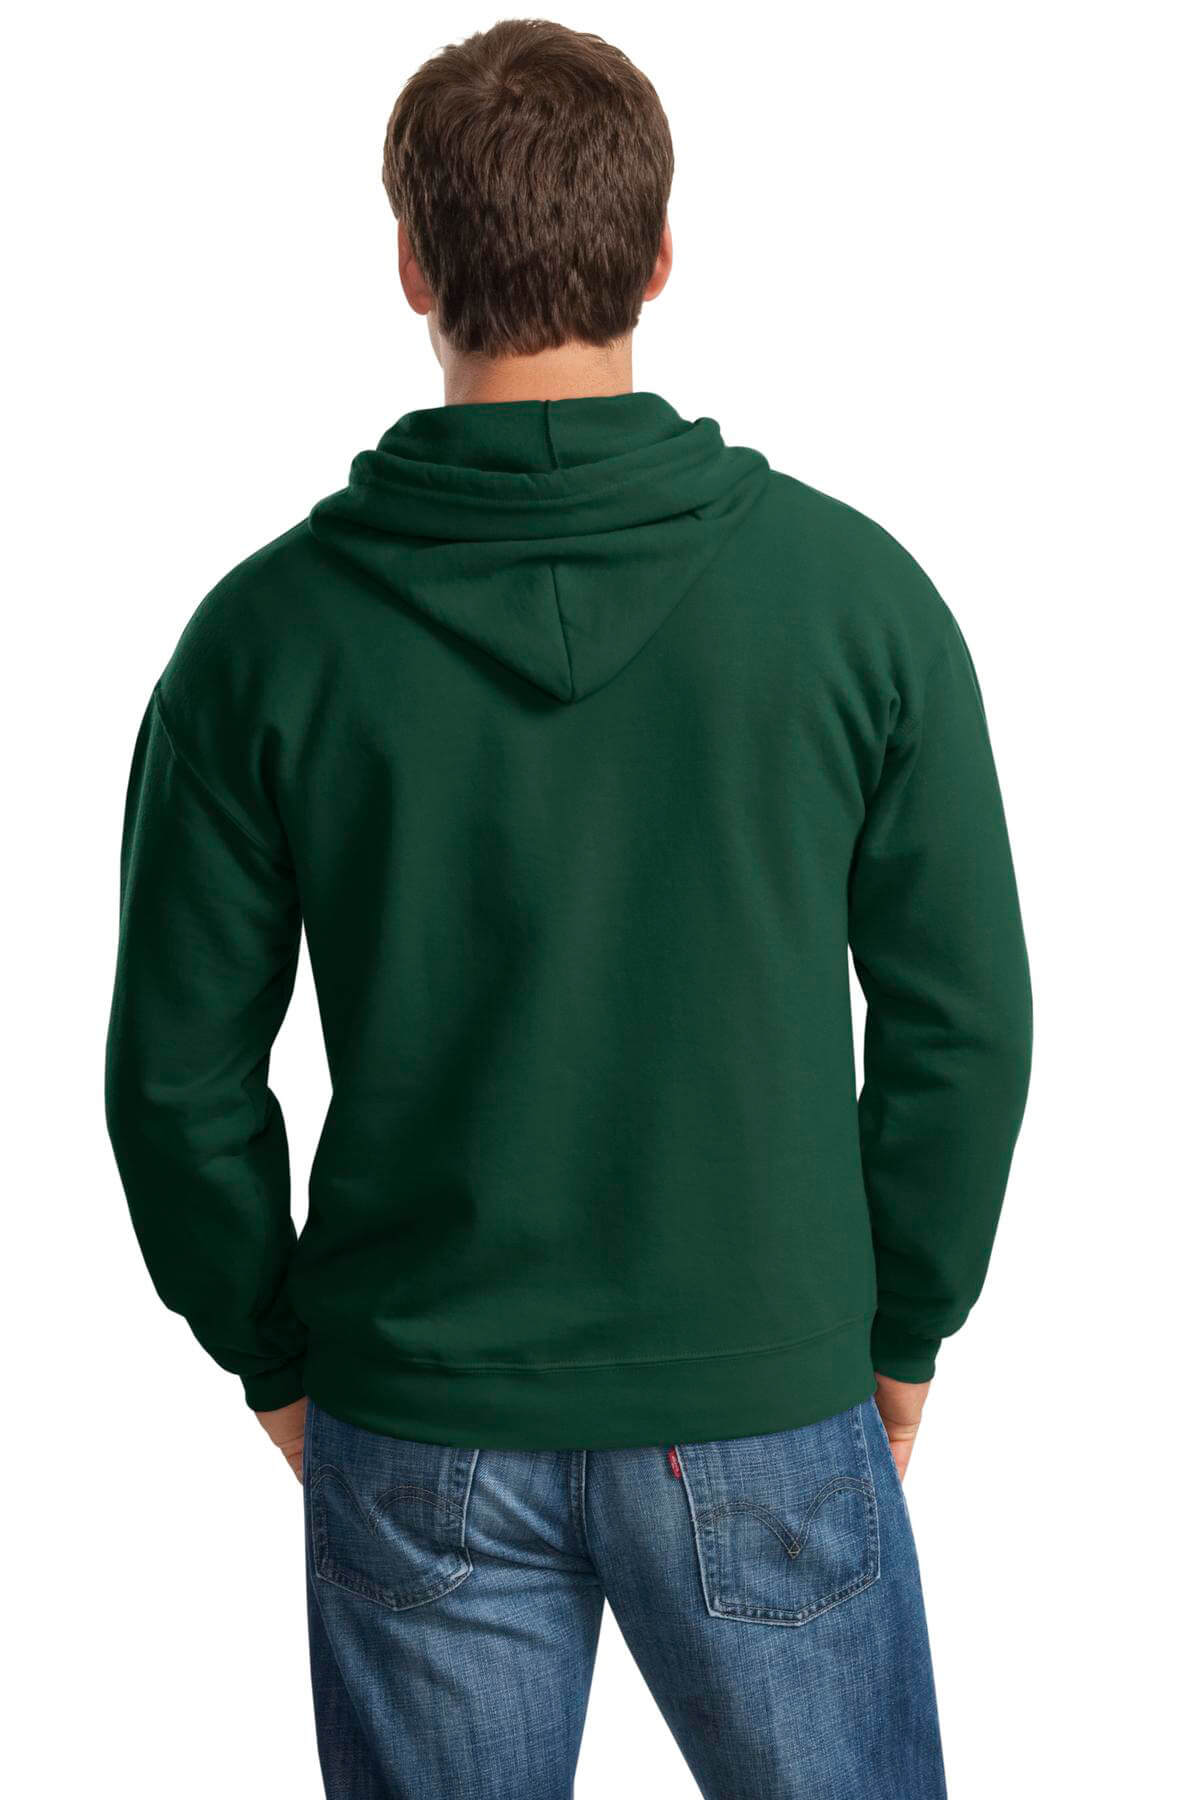 18600-forest-green-2